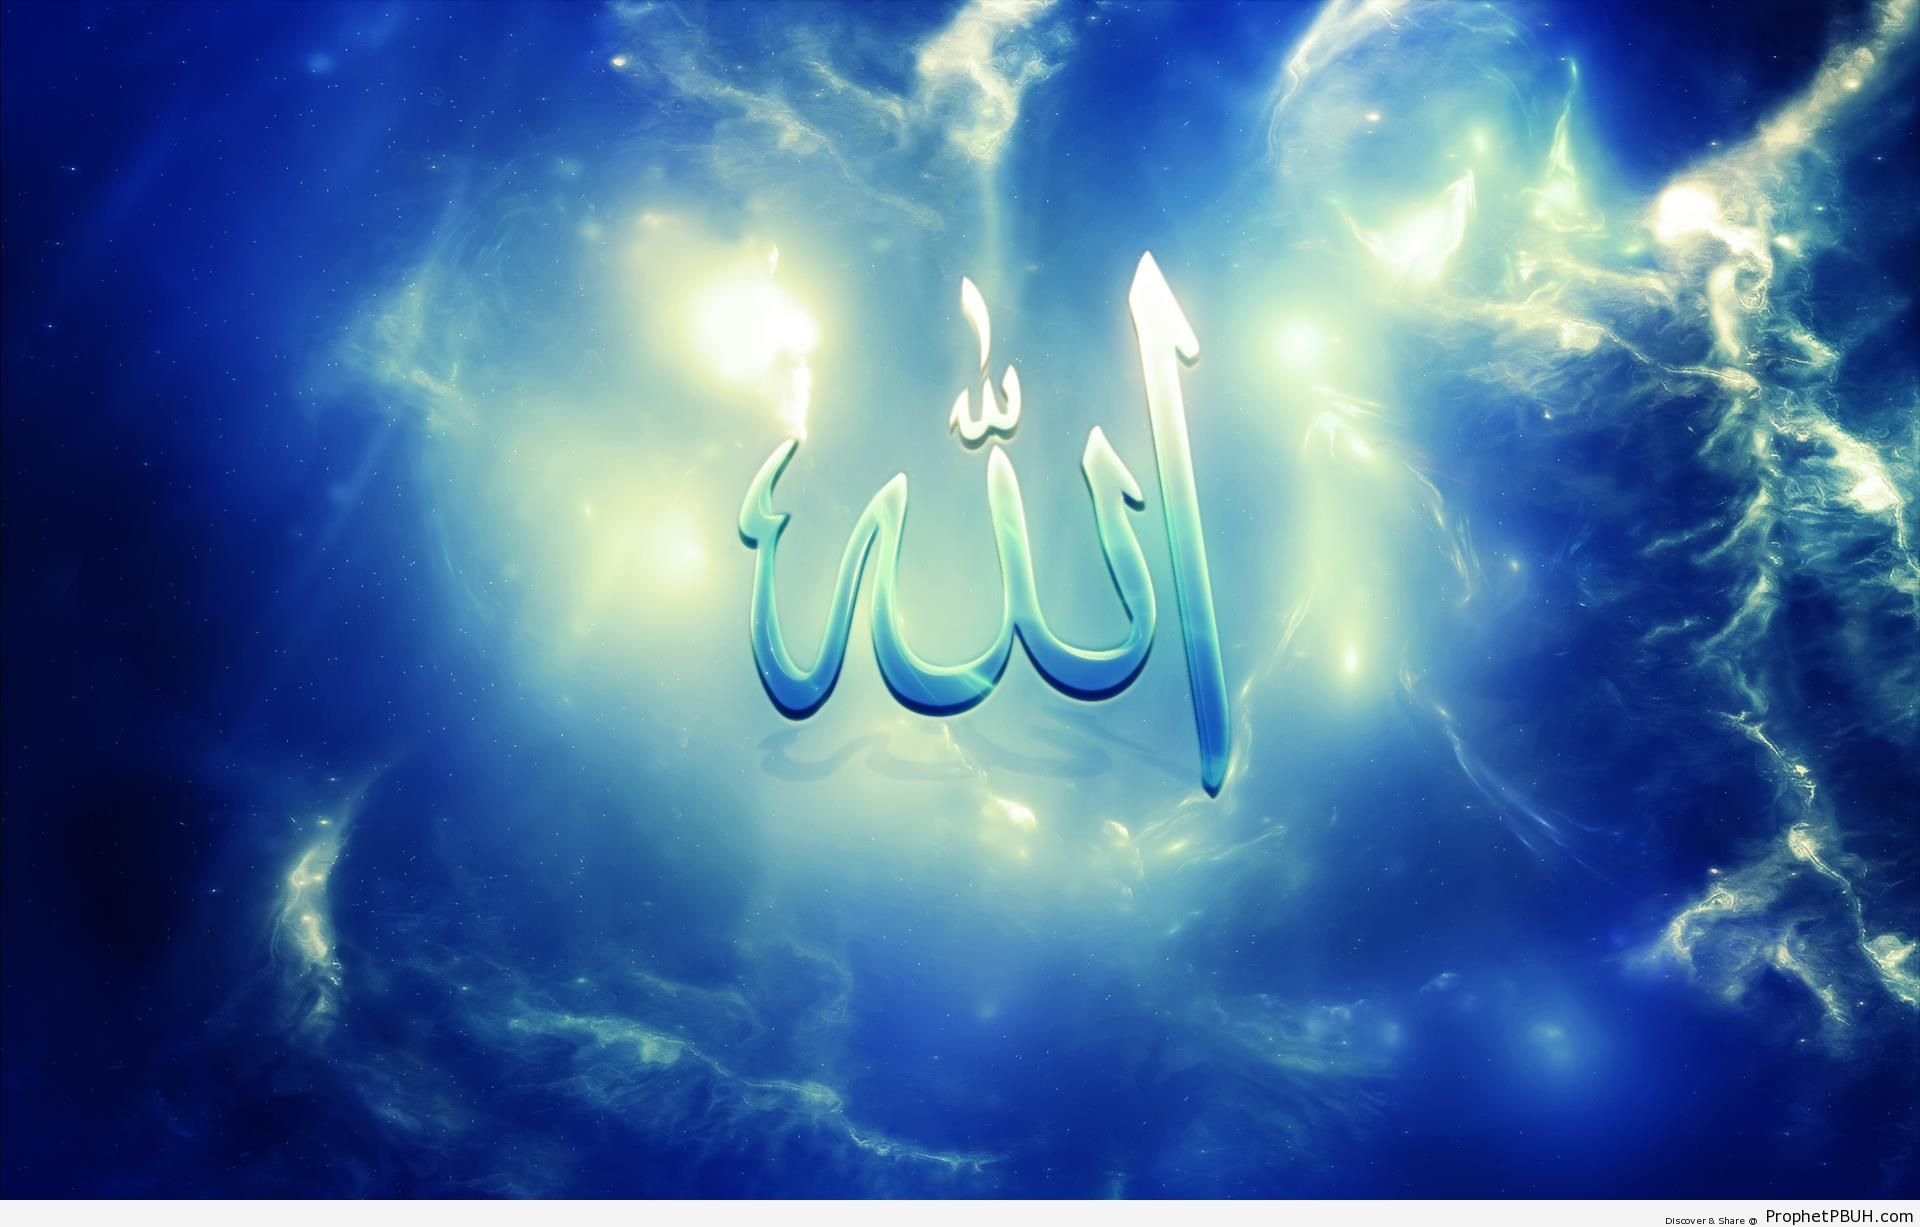 <b>Allah Wallpaper Hd 2015</b> - WallpaperSafari